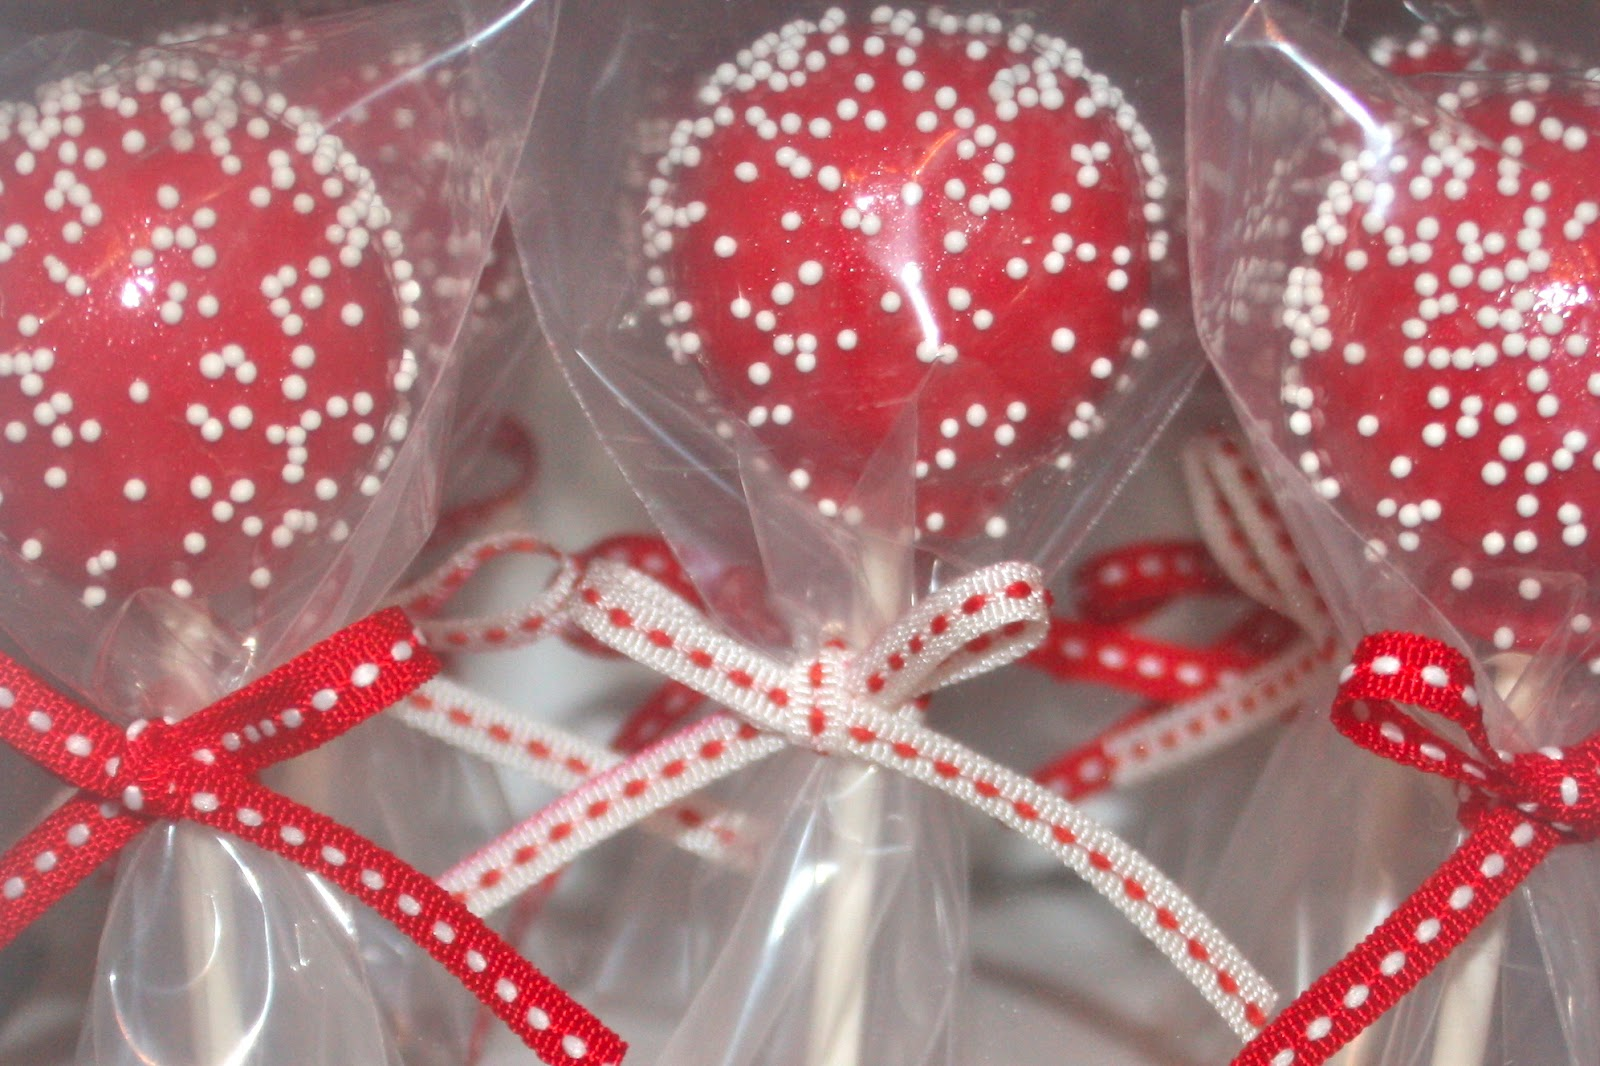 My Sweet Vie: My Cakepops